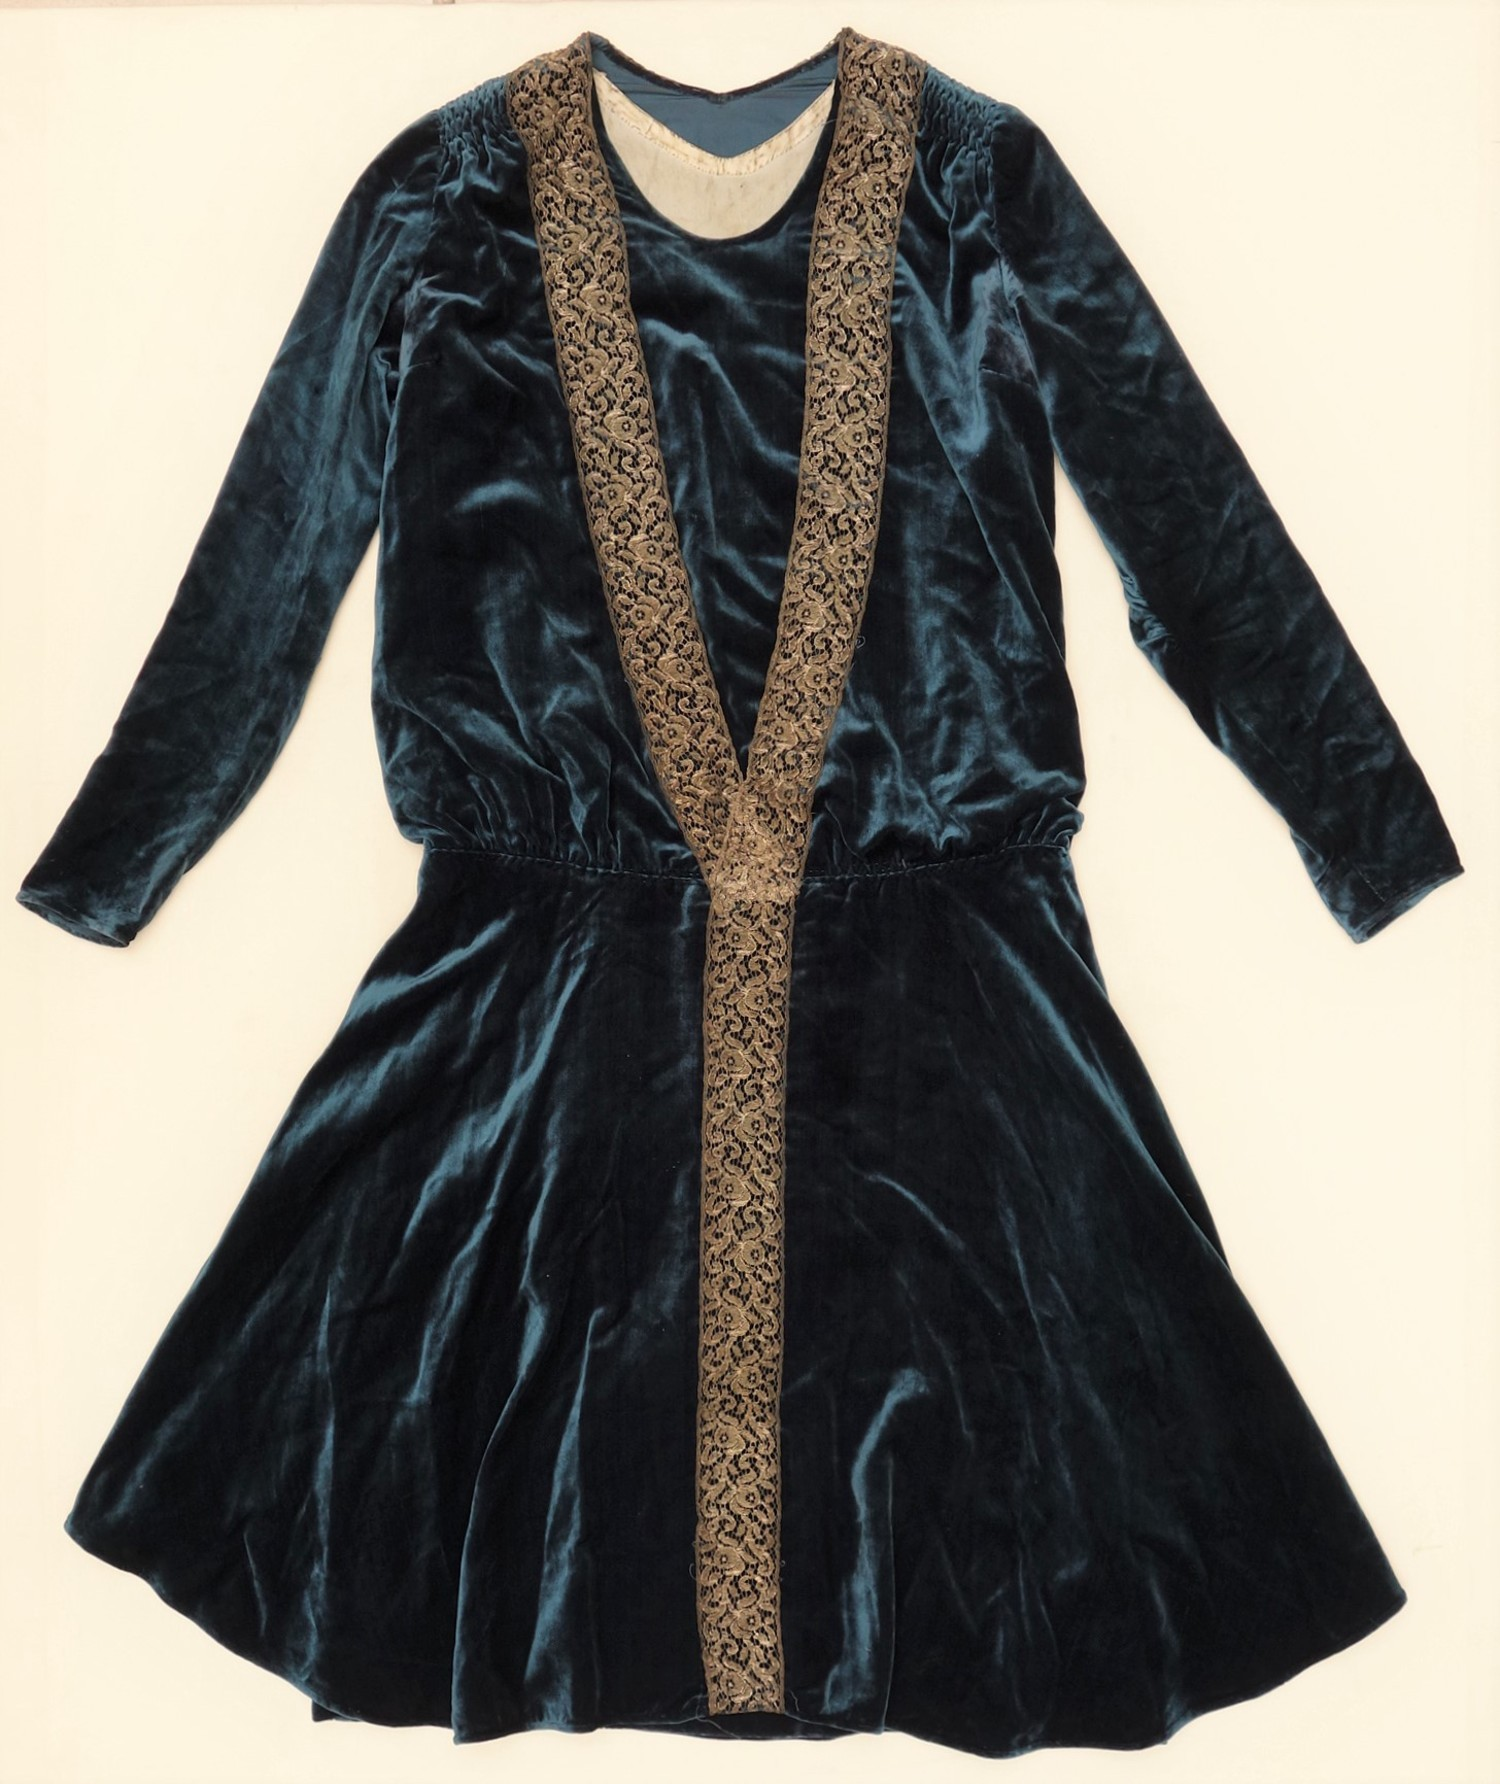 No. 96: Woman's velvet dress with gold coloured metal lace (c. 1920's, USA; TRC 2018.2621).